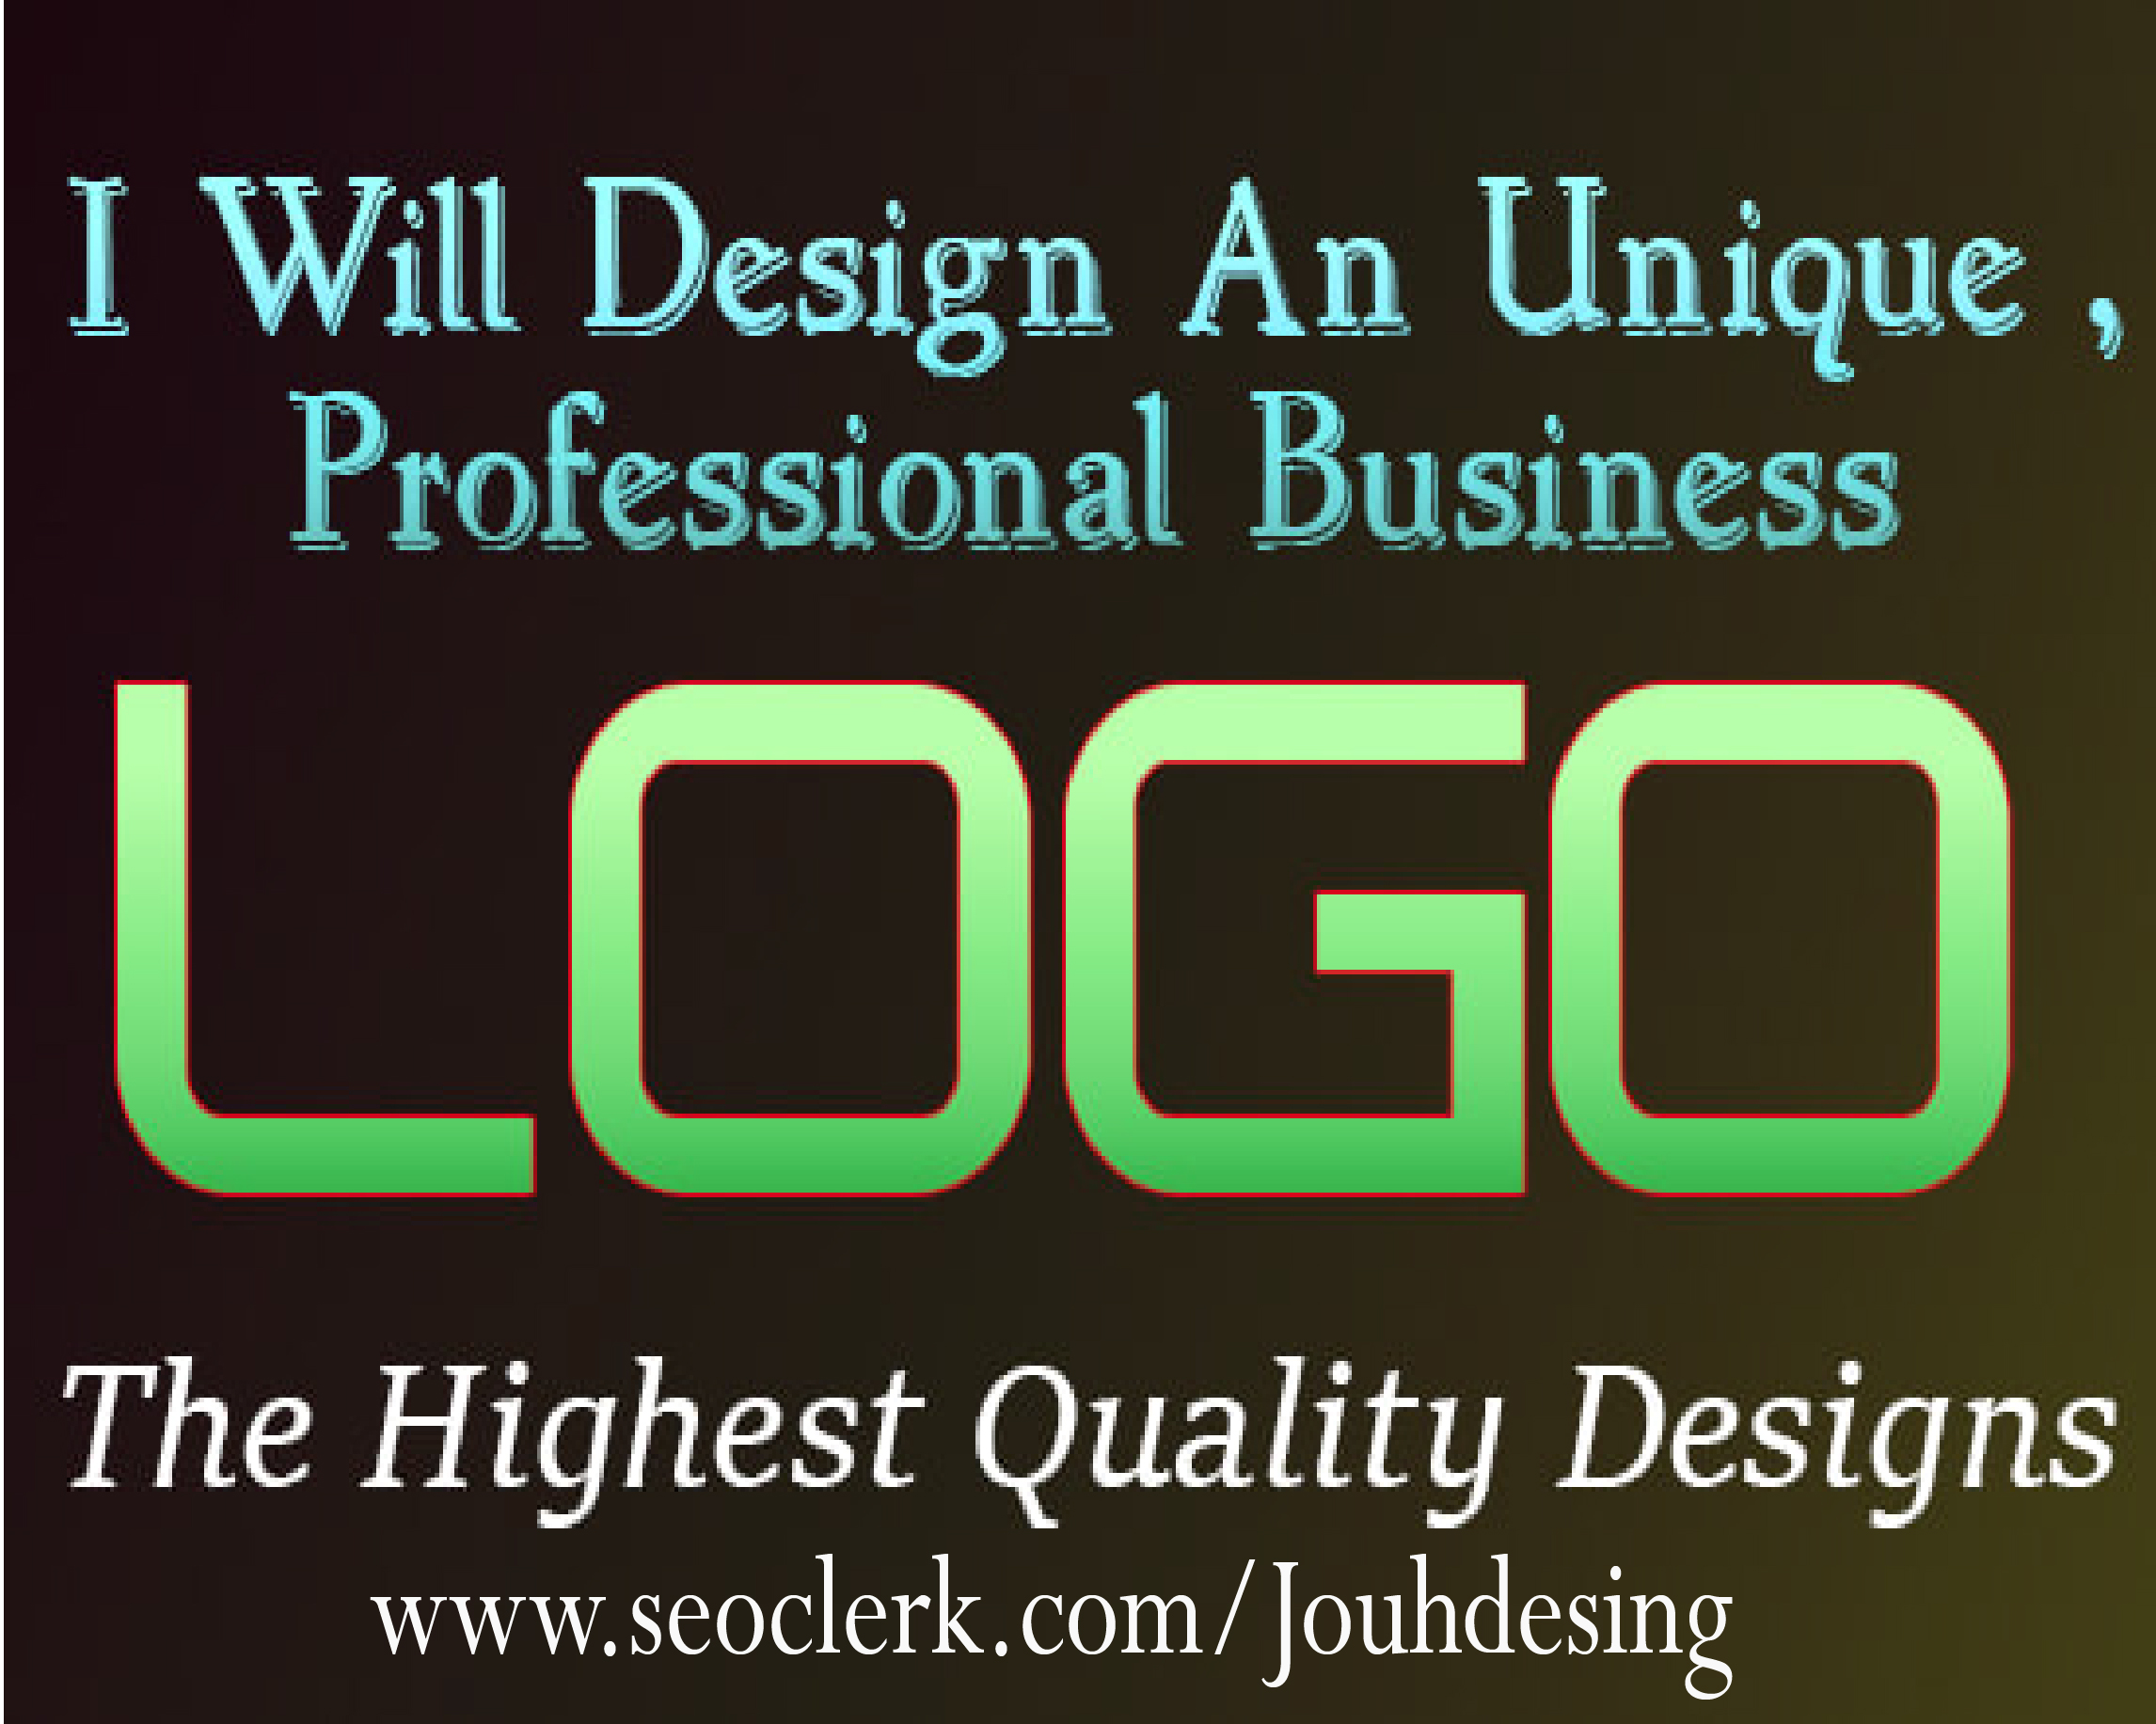 I ll design 3 AWESOME and Professional logo design for your business